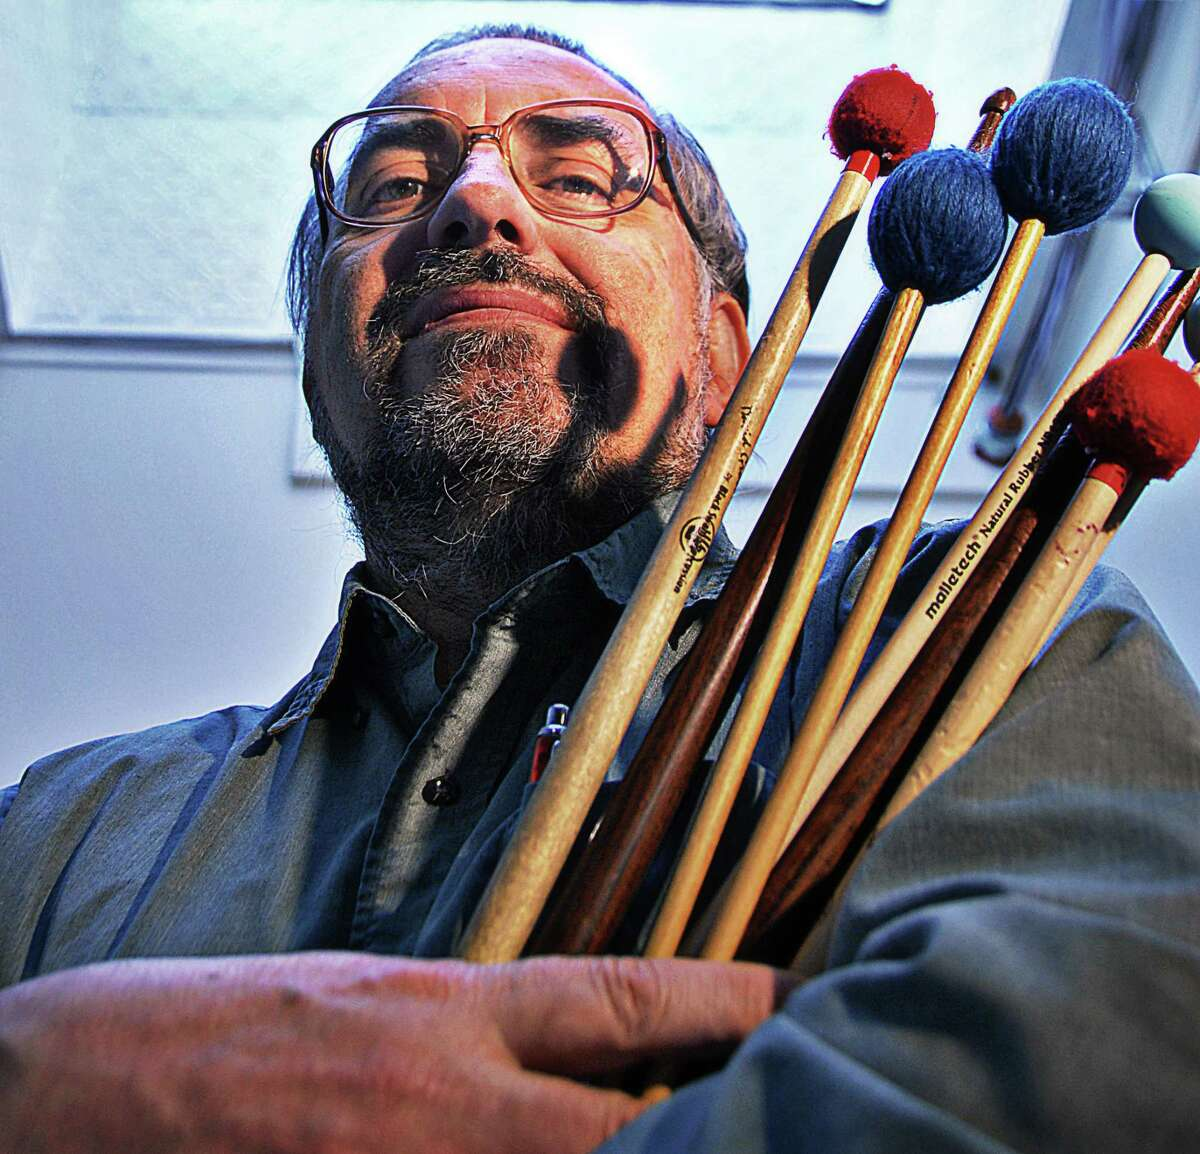 Times Union staff photo by John Carl D'Annibale: Professor of percussion at both UAlbany and RPI Richard Albagli poses with sticks and mallets at a rehearsal room in RPI's West Hall Wednesday afternoon November 21, 2007. FOR FURFARO STORY